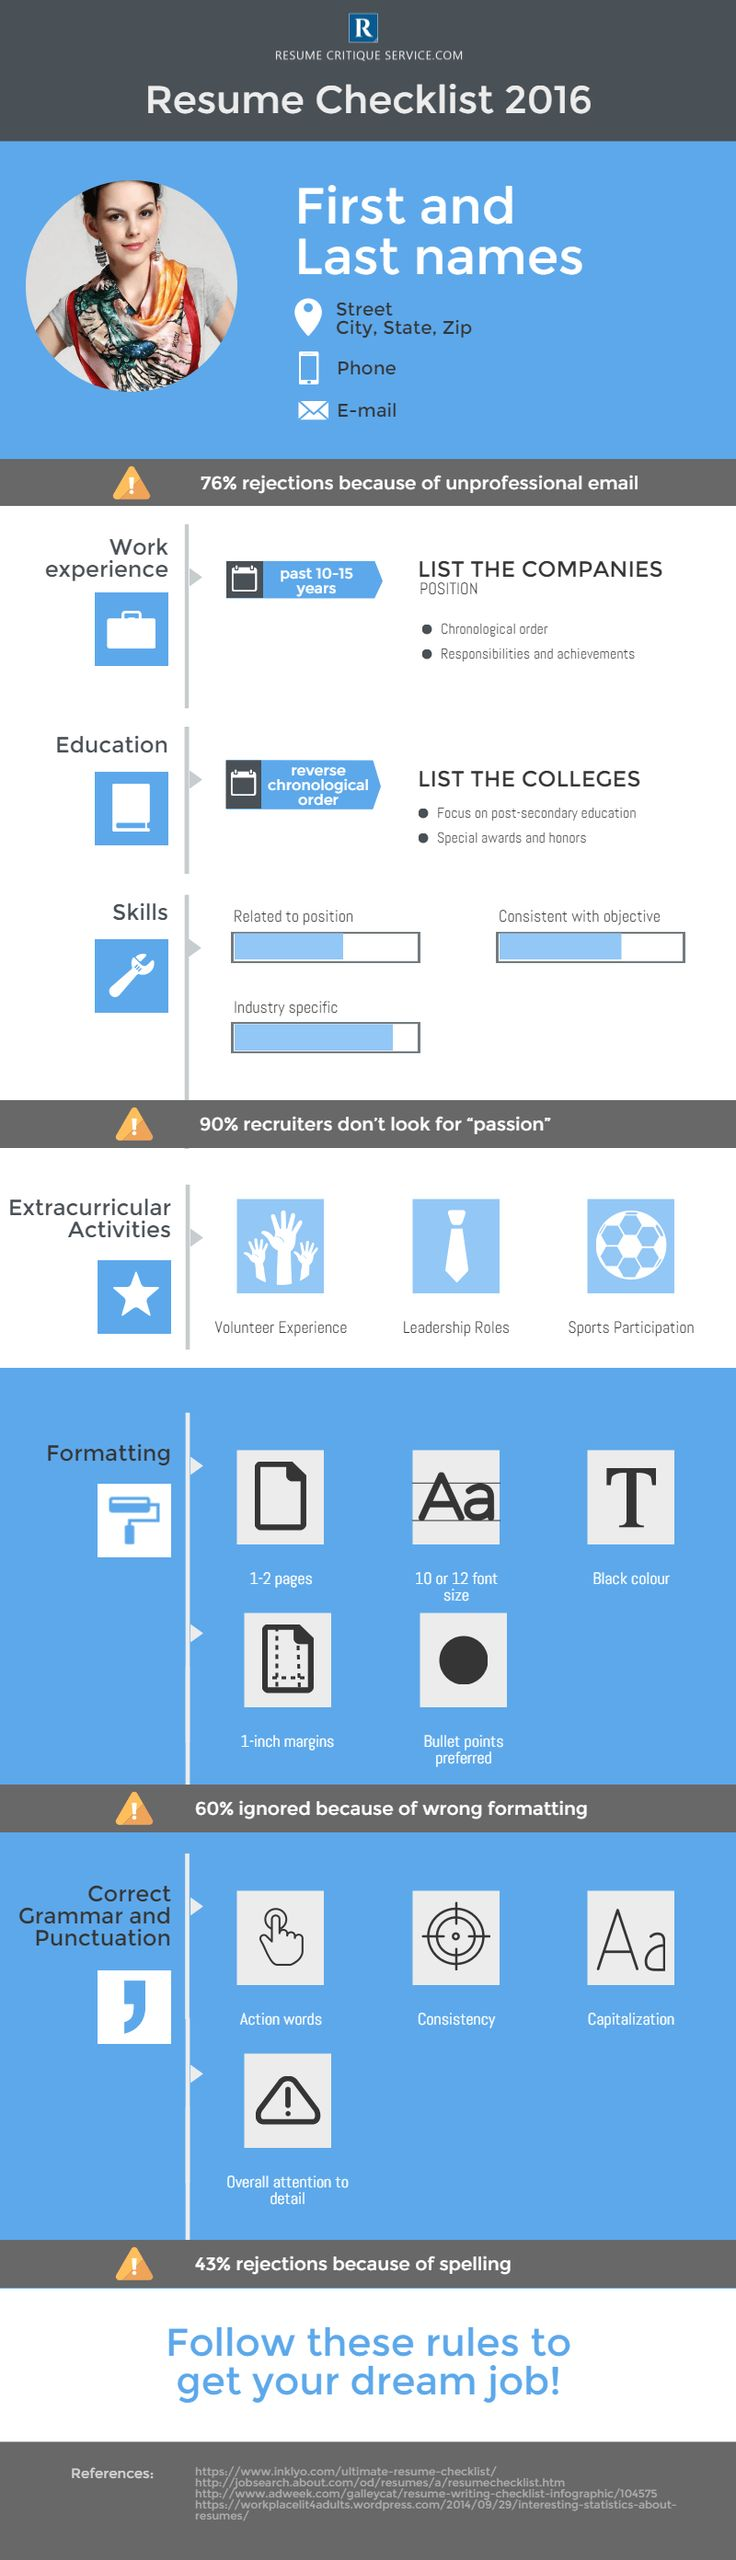 Margins For Resume 67 Best Resume Images On Pinterest  Gym Resume And Interview